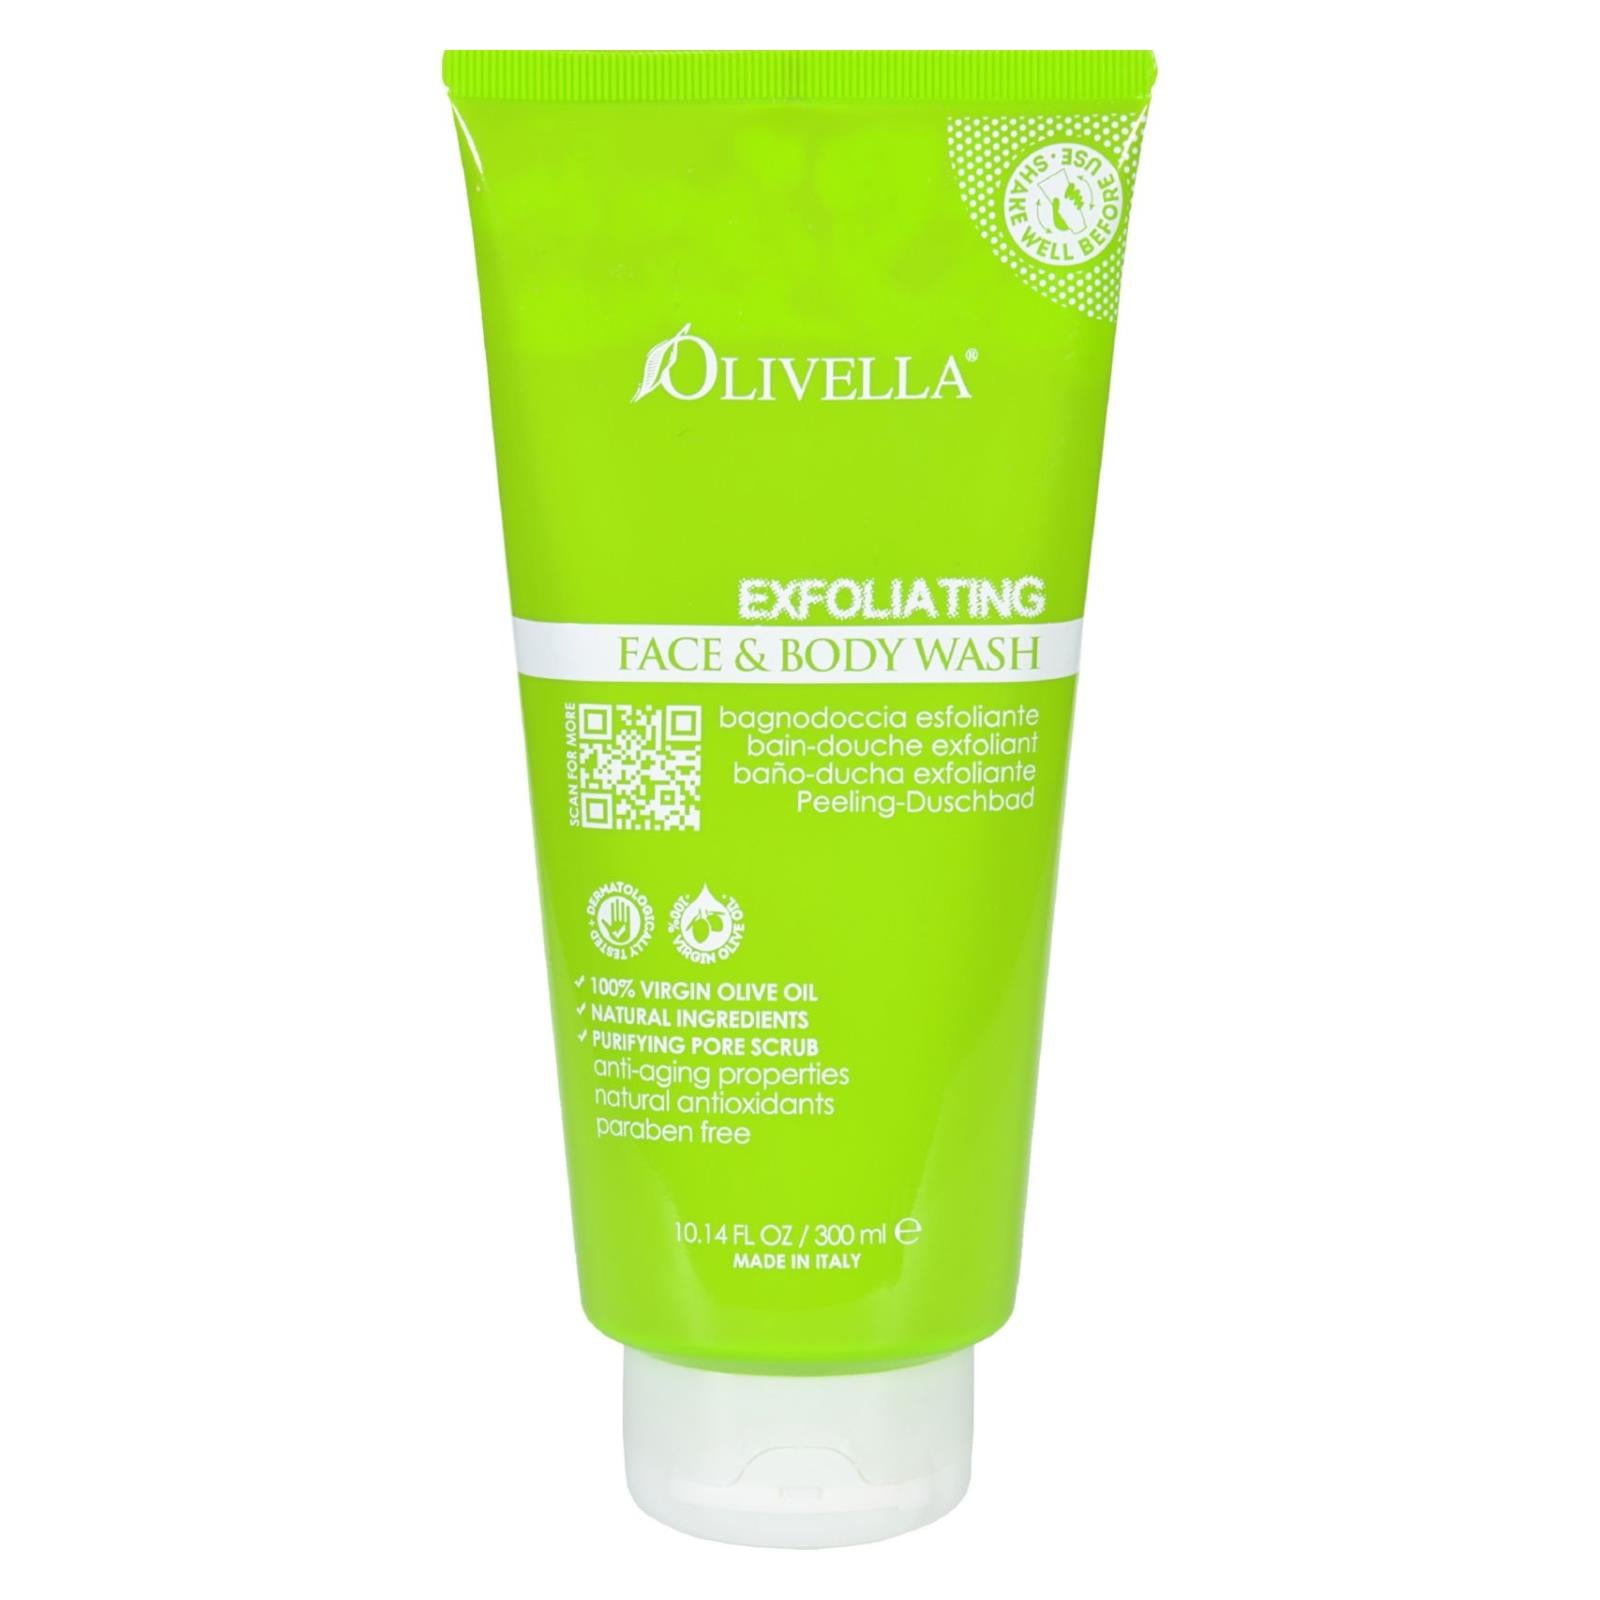 Buy Olivella Face and Body Wash - Exfoliating - 10.14 fl oz - Body Wash from Veroeco.com